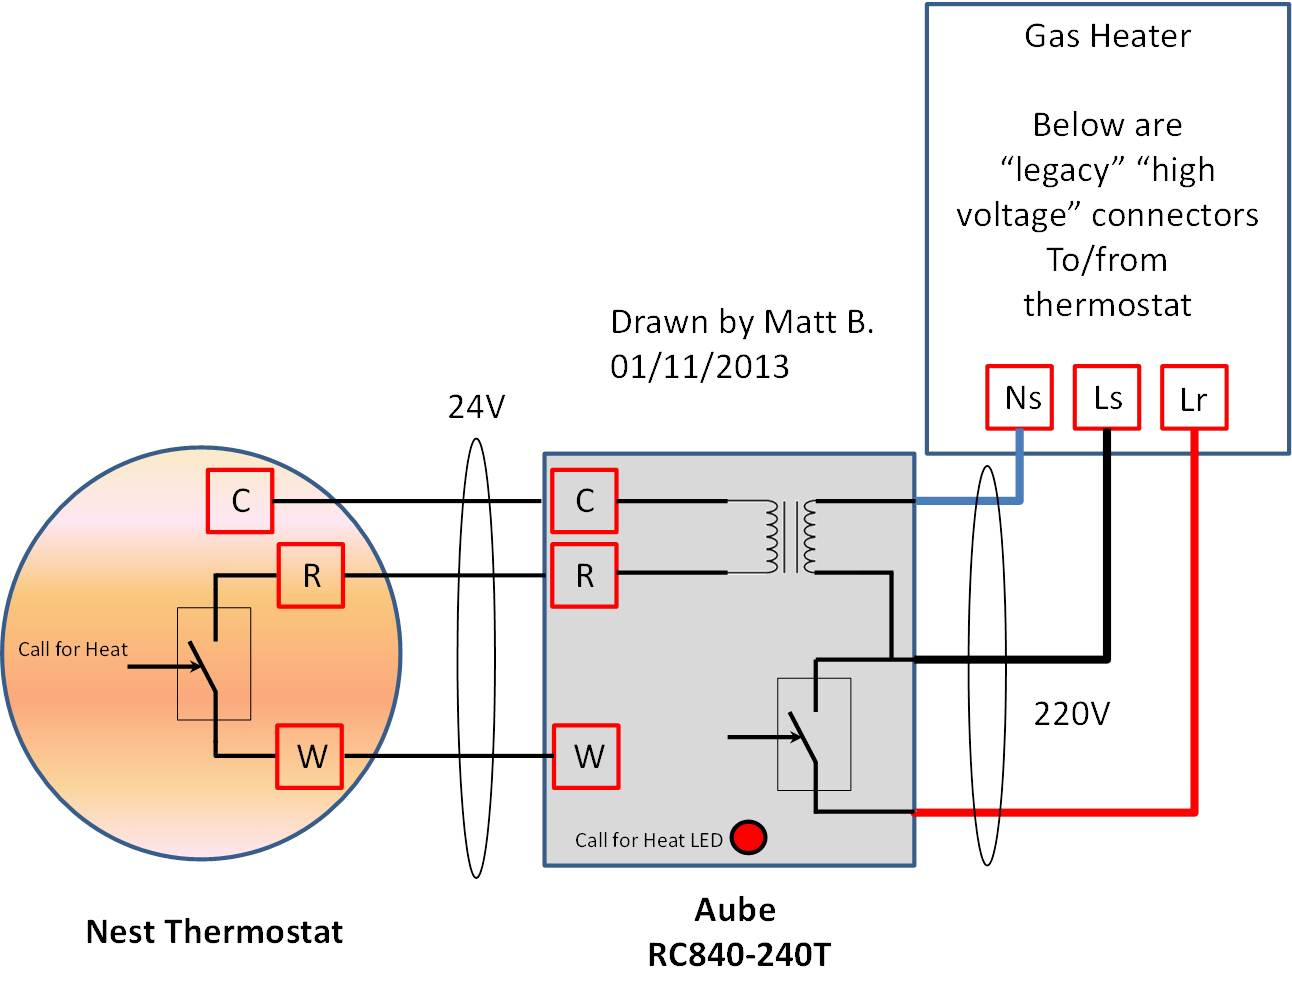 Haute Tension 220V Nest Thermostat Cablage En Europe Thru Rc840 From - Nest Wiring Diagram Gas